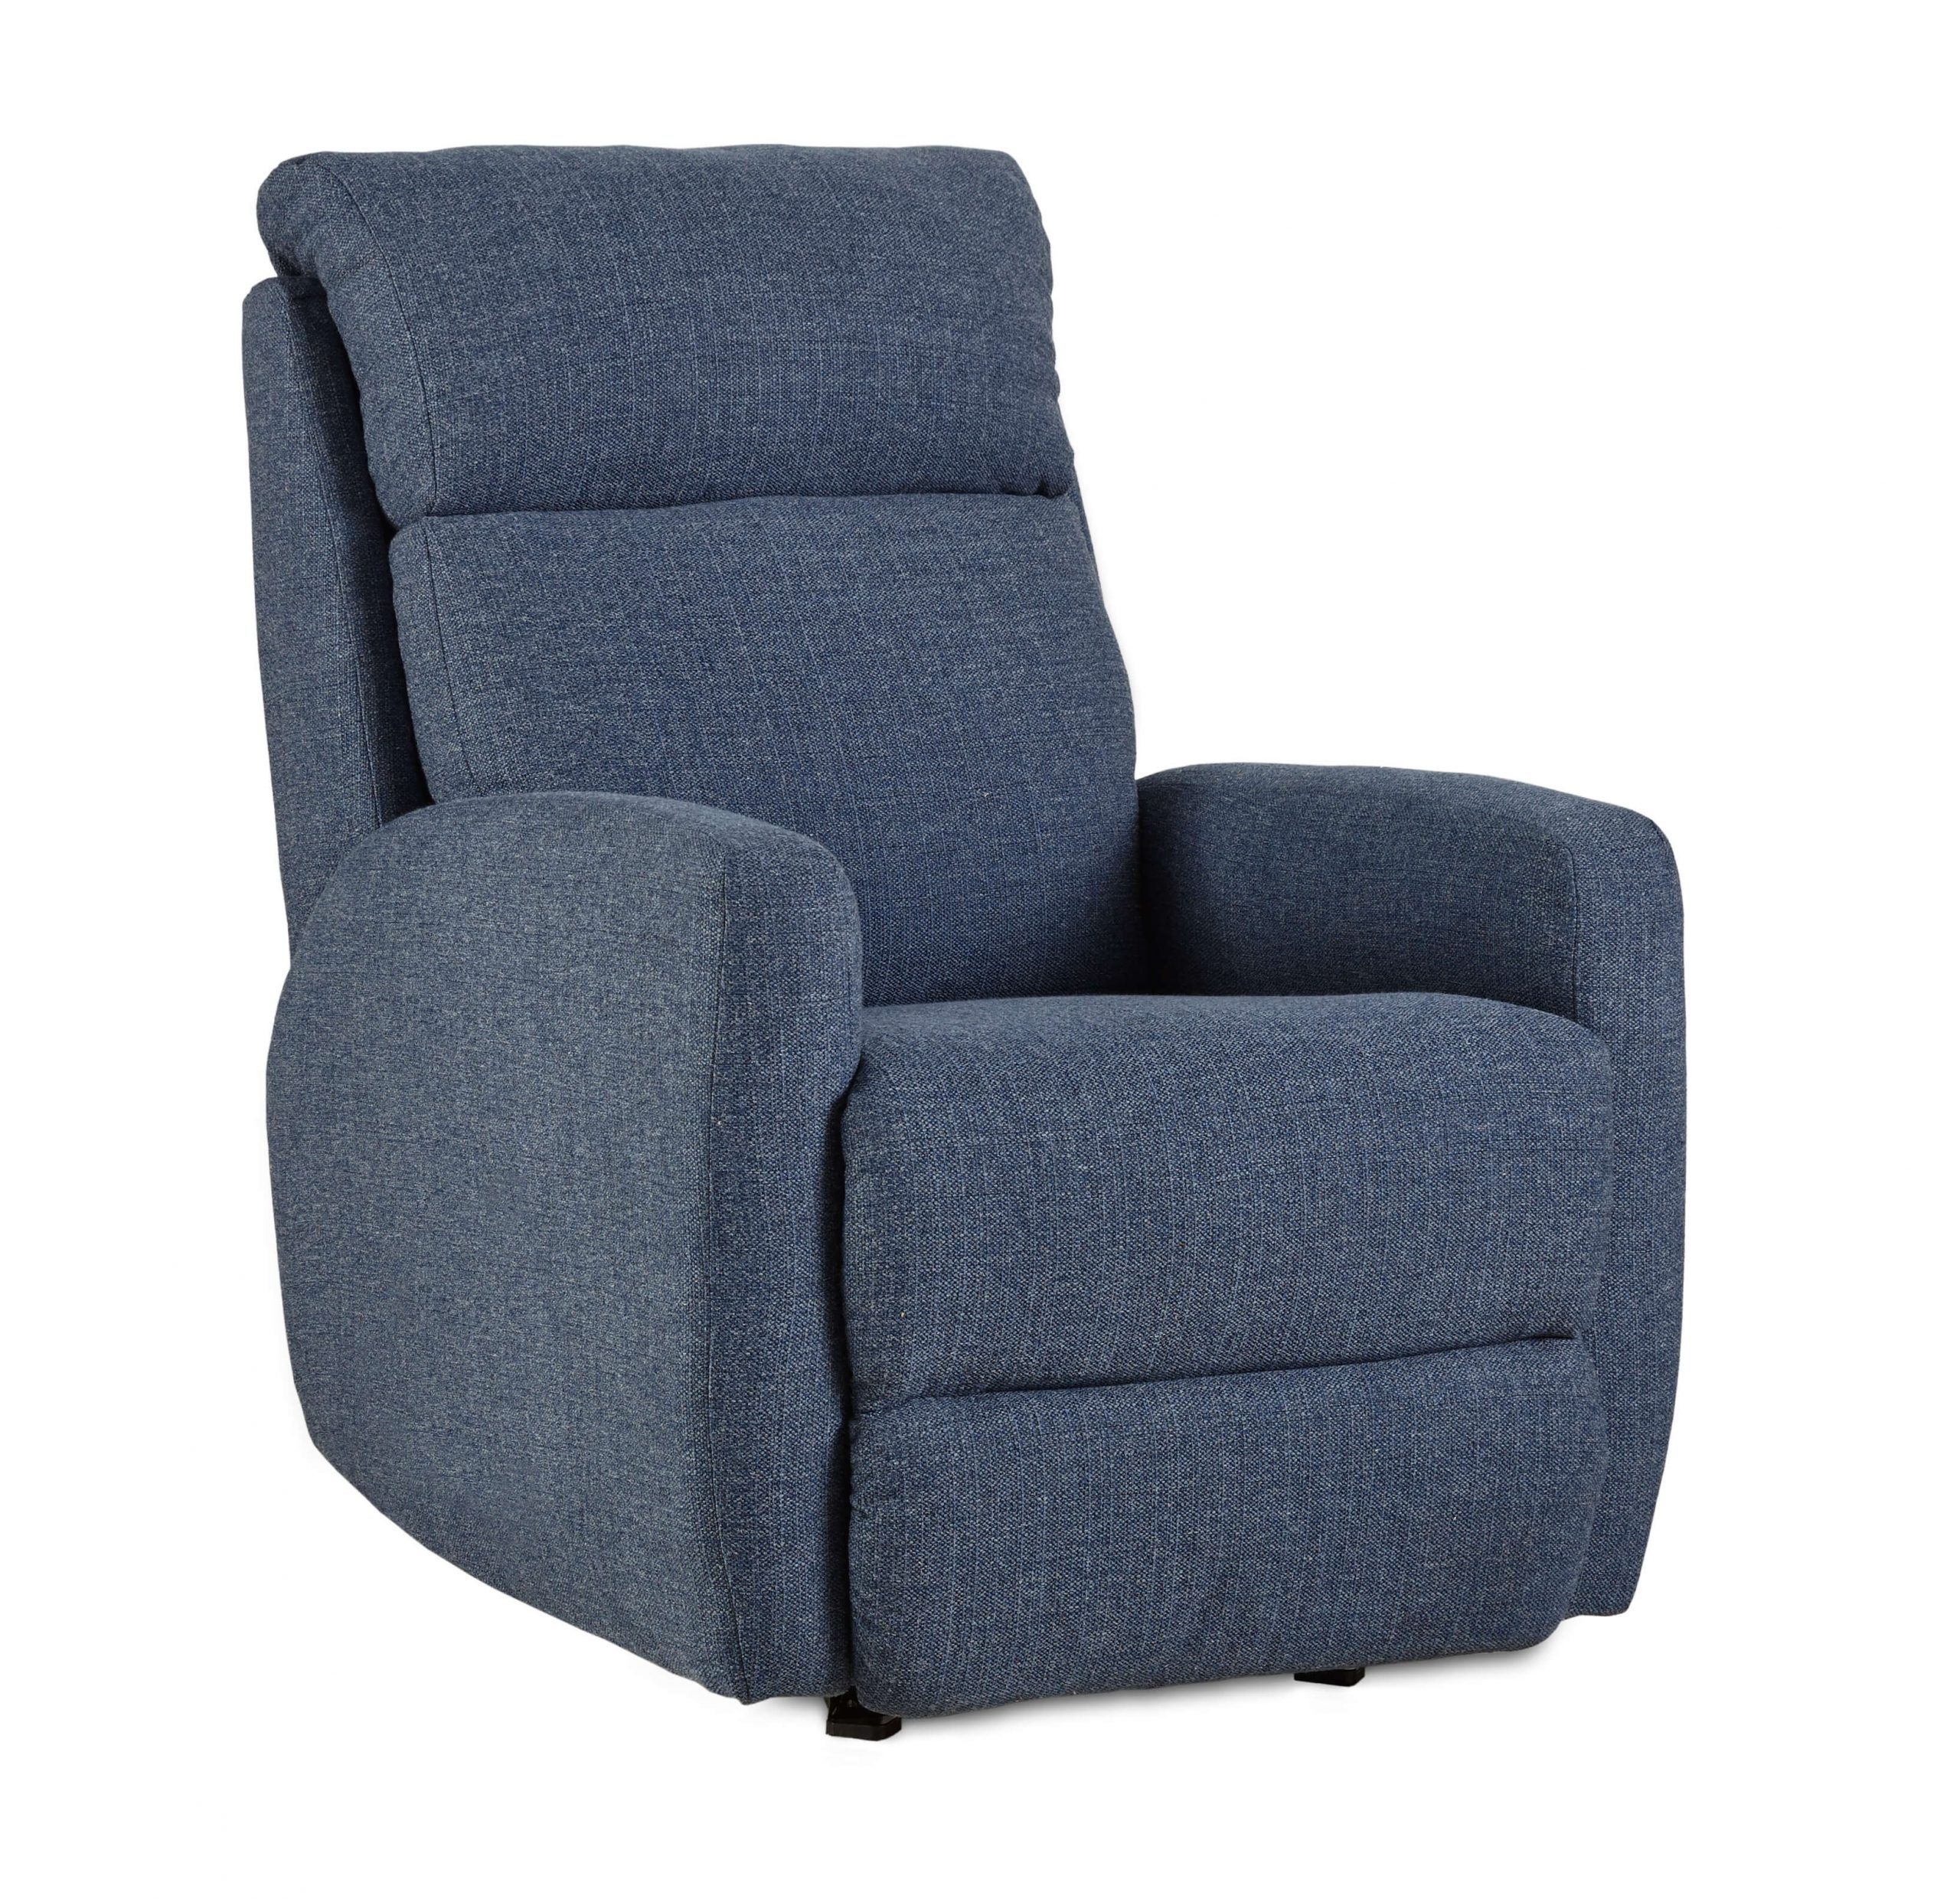 1144-primo-in-285-60-cabana-navy-recliner-sweep-scaled